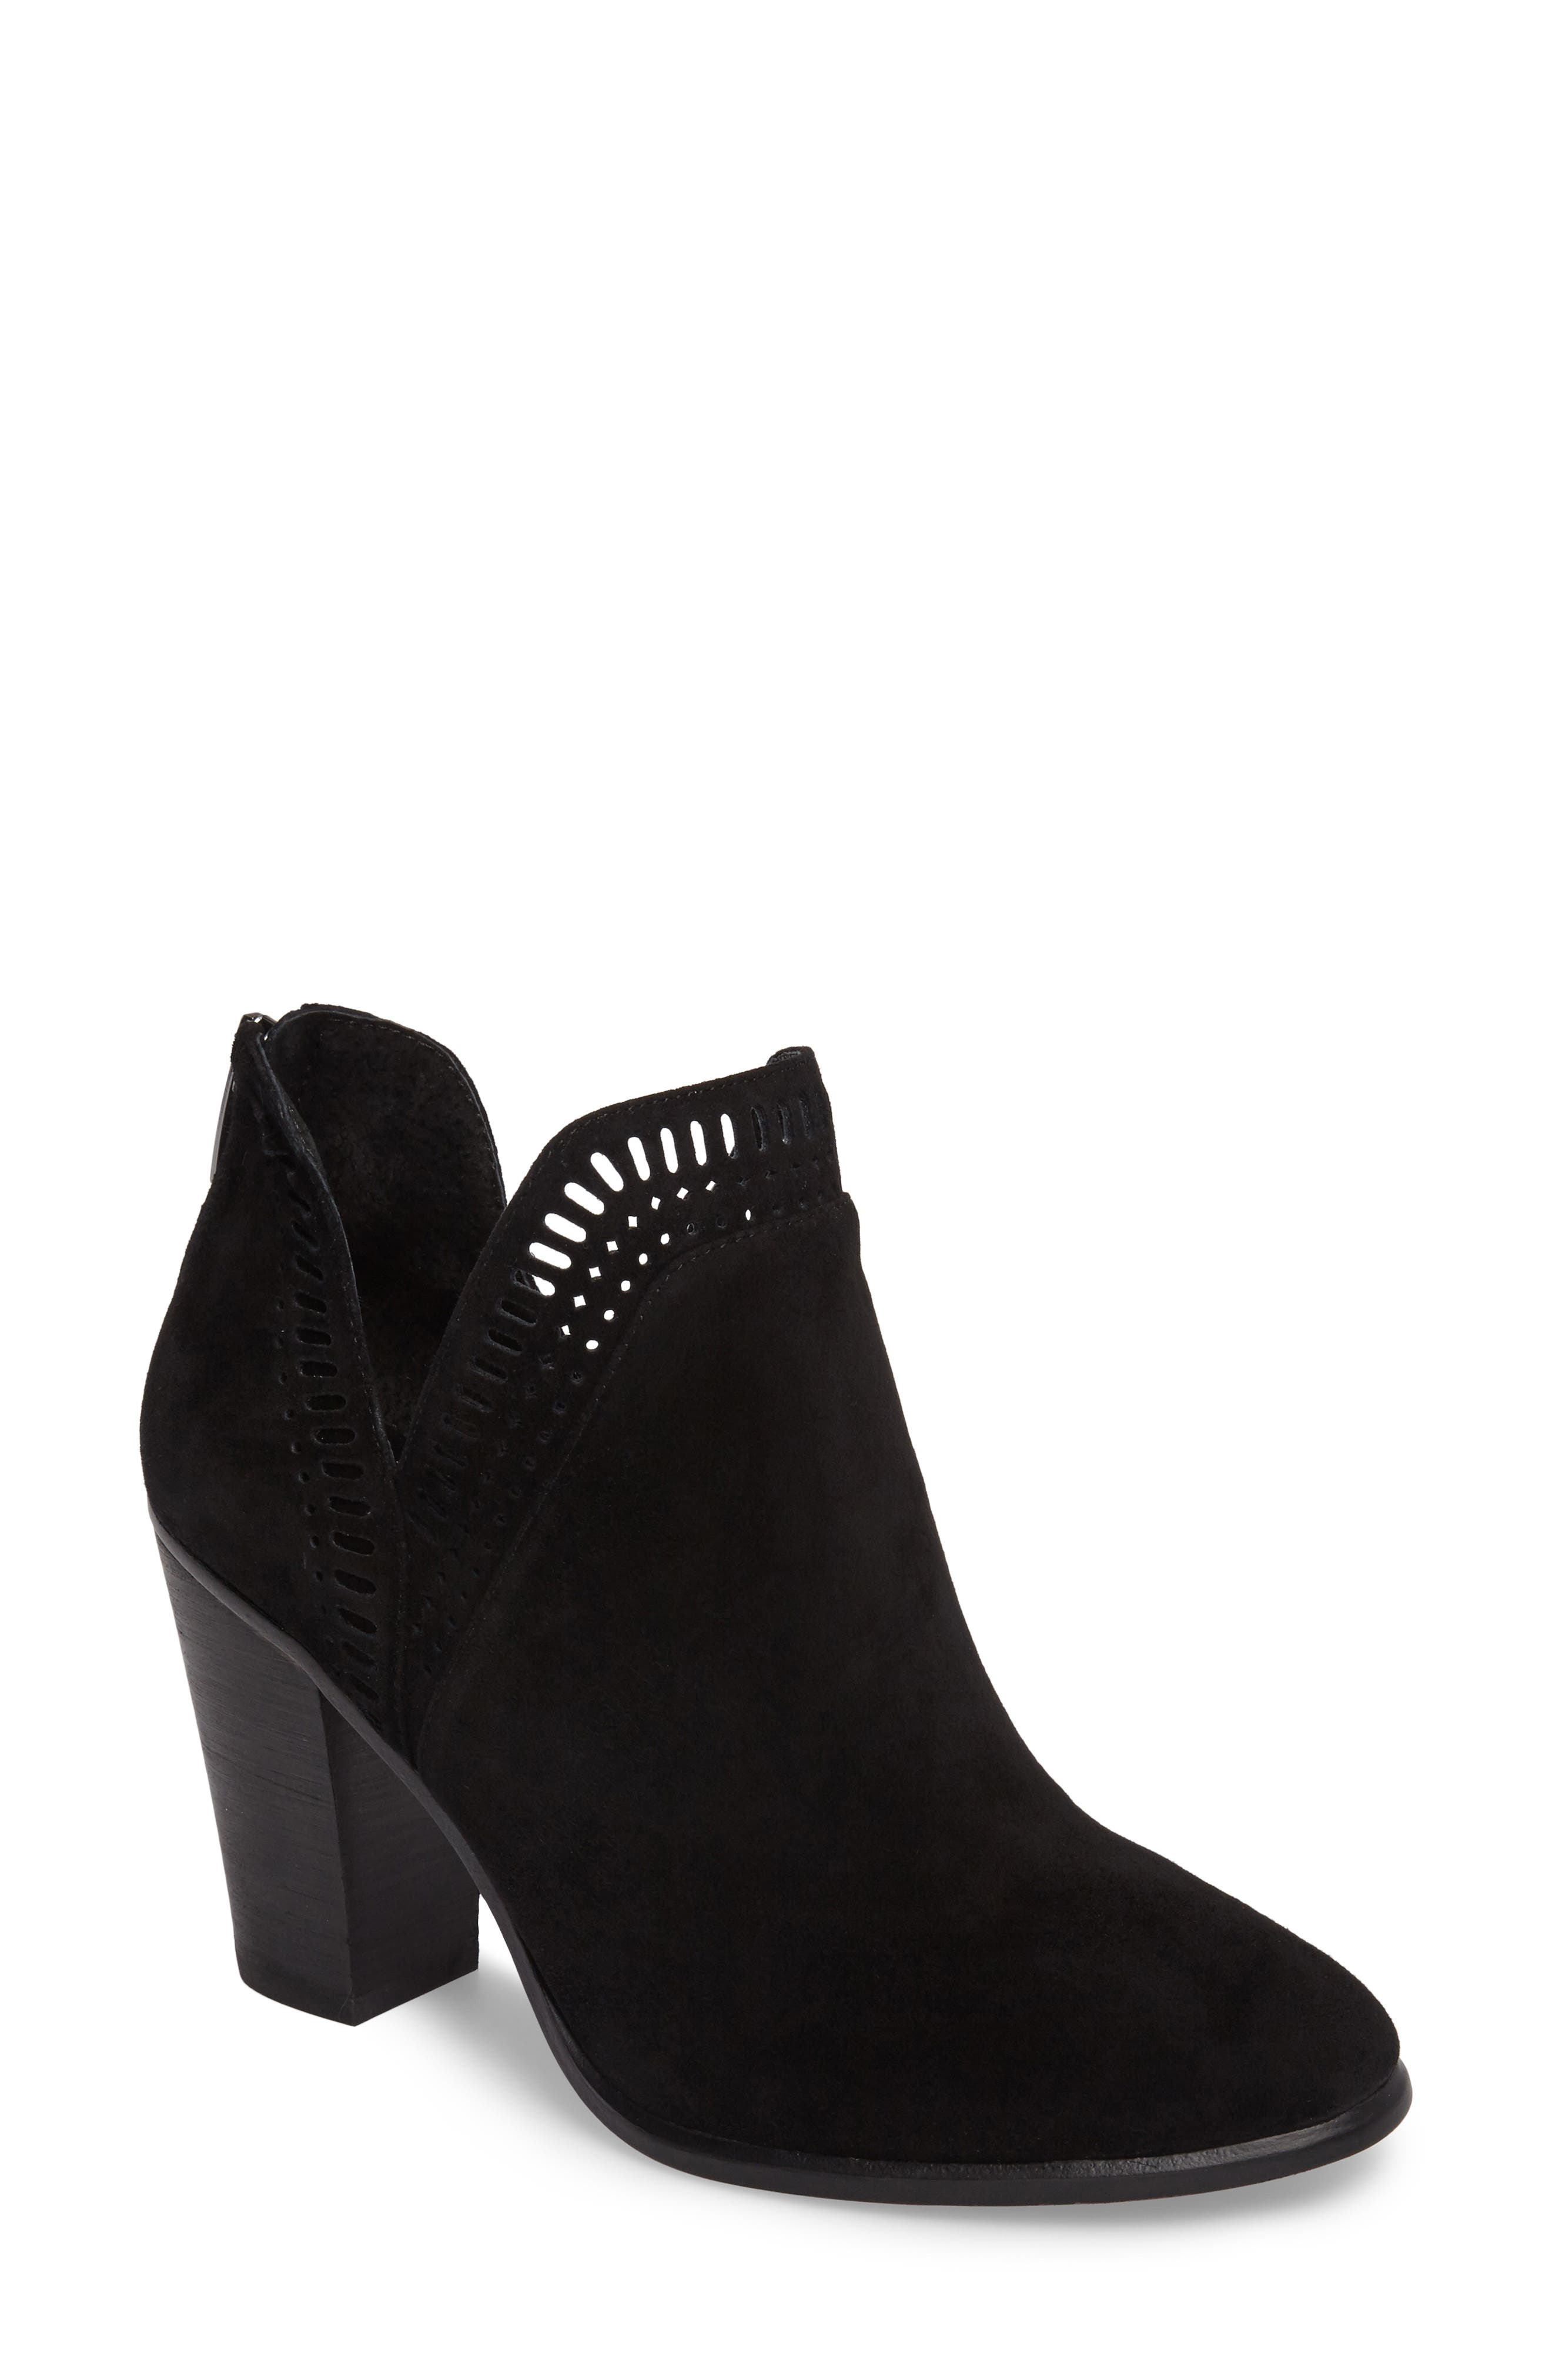 VINCE CAMUTO, Fileana Split Shaft Bootie, Main thumbnail 1, color, 001